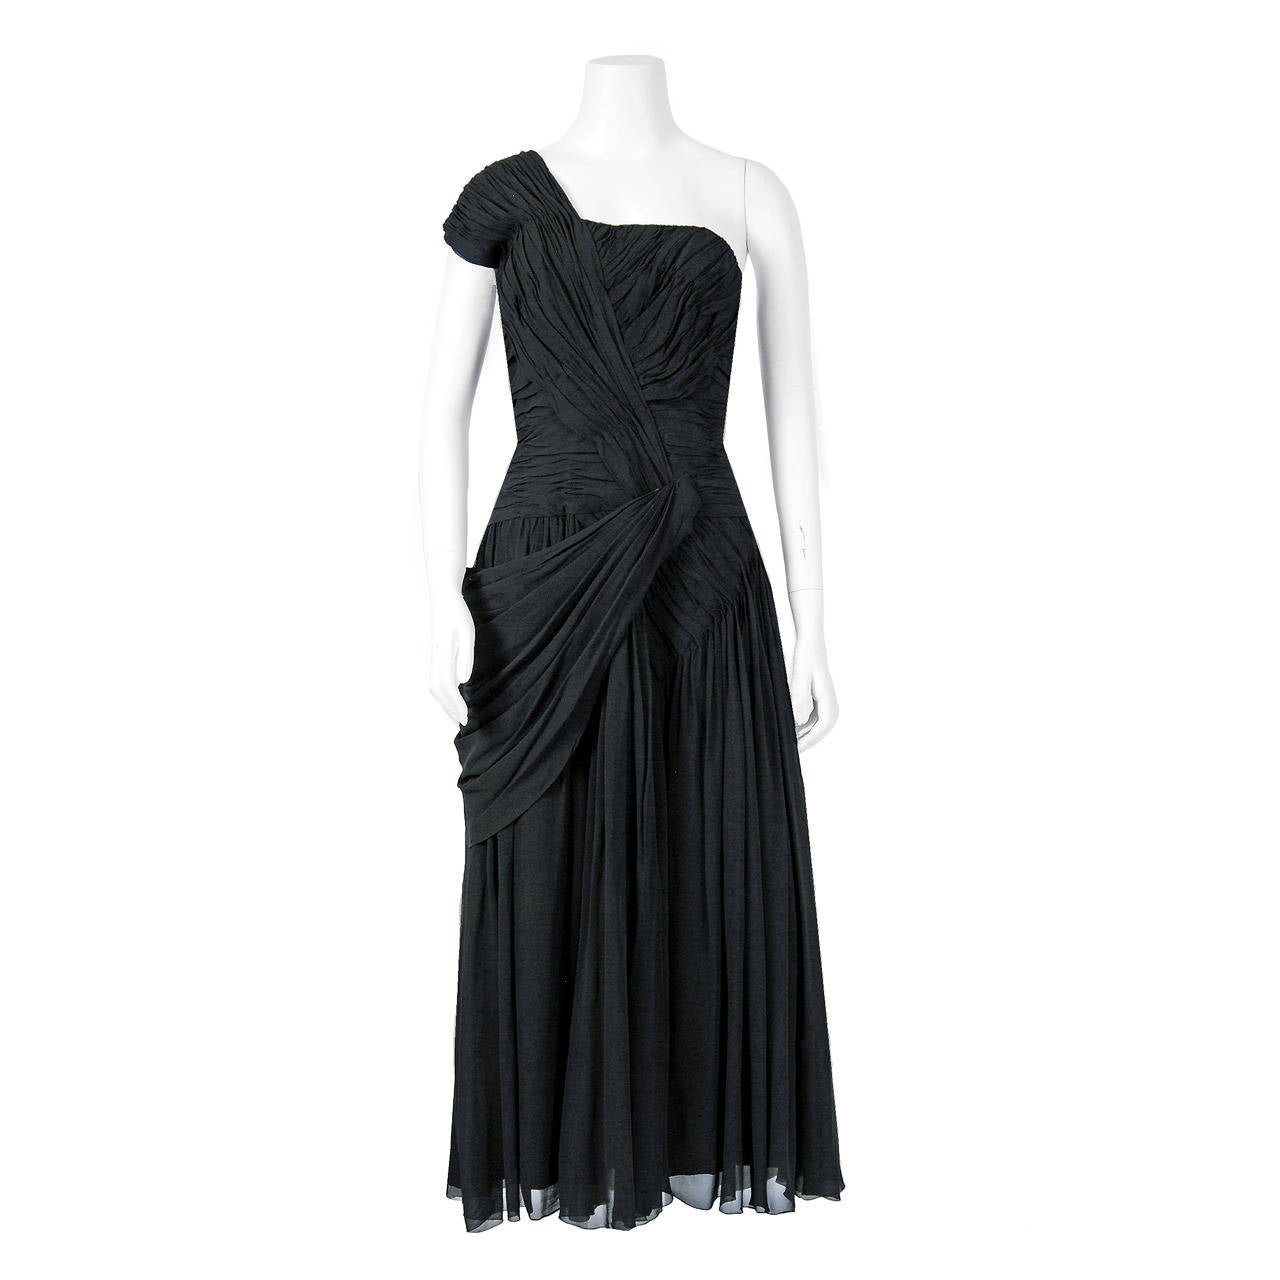 1950's French Couture Heavily-Pleated Black Chiffon One-Shoulder Party Dress For Sale